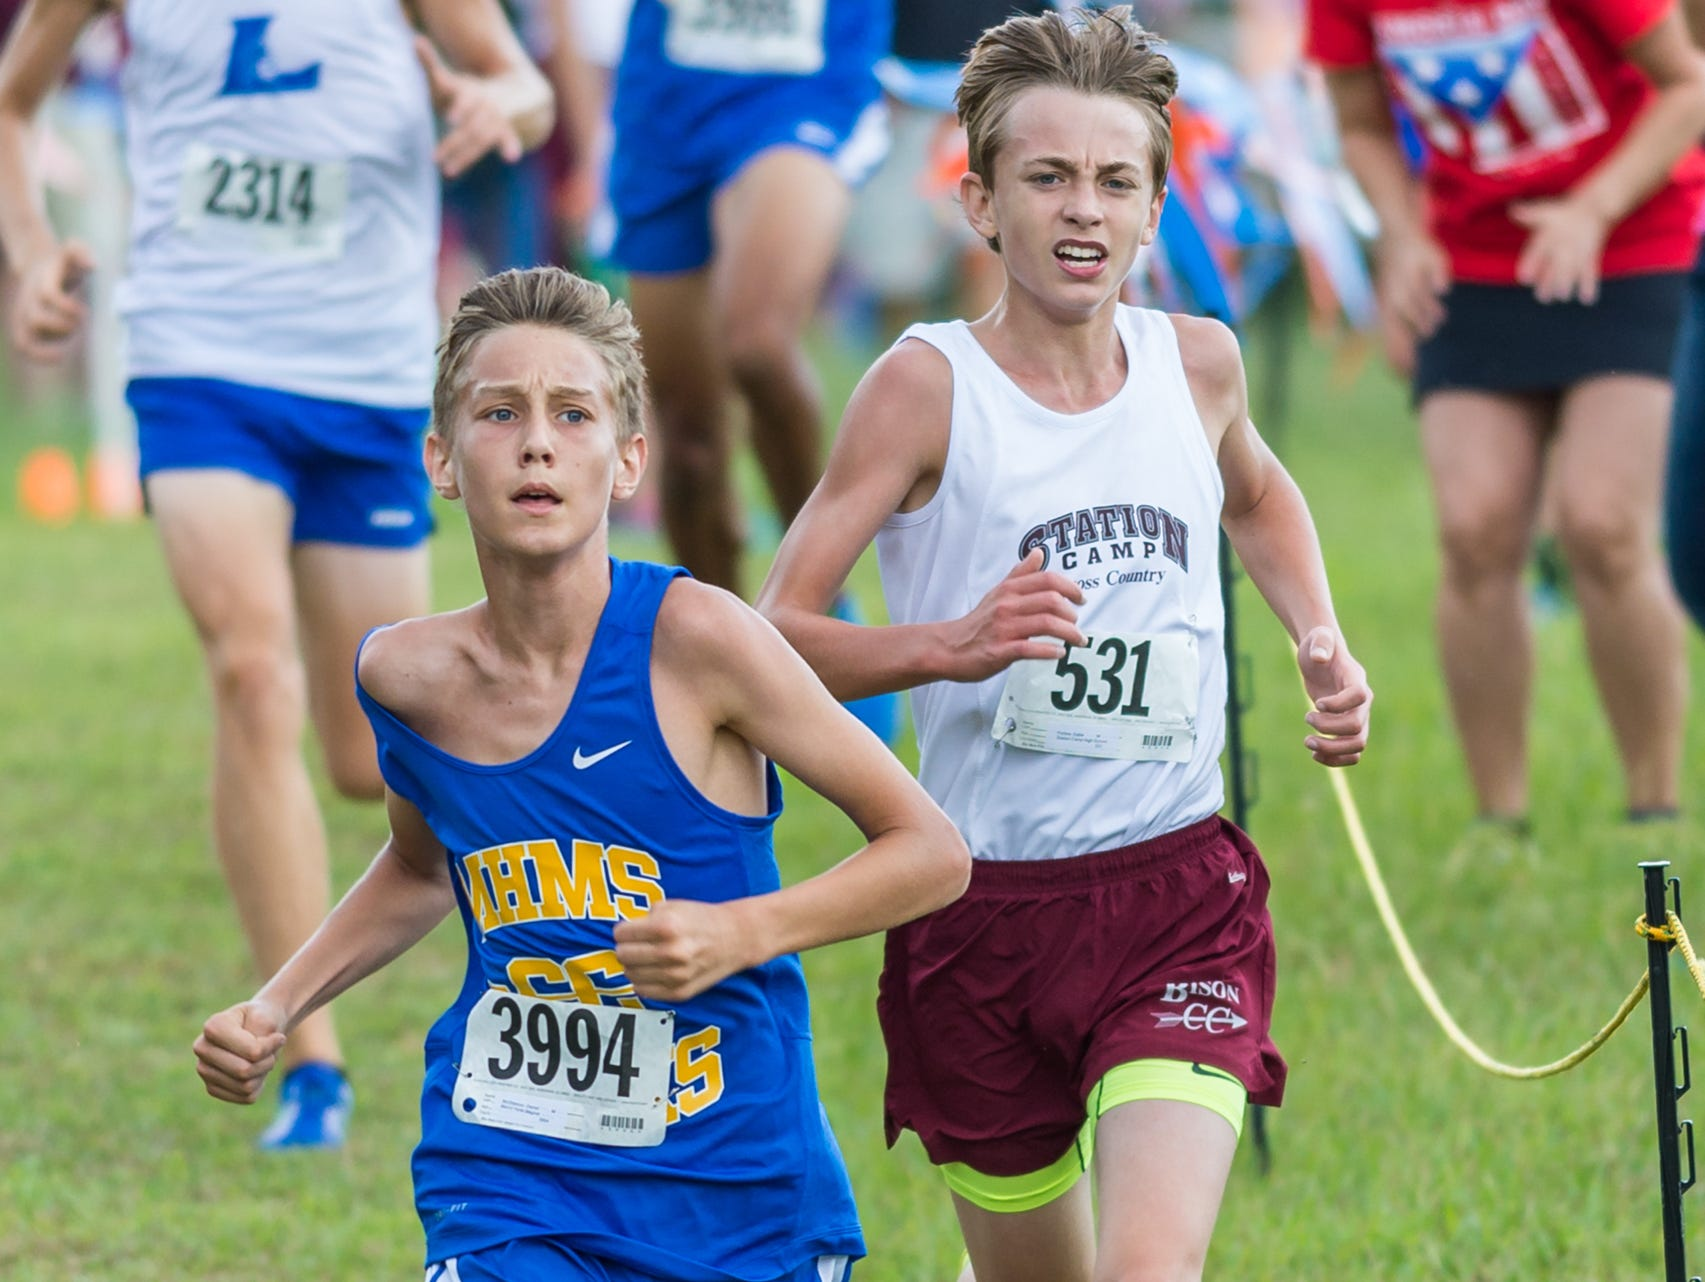 Merrol Hyde Magnet sophomore Garret McGlasson leads Station Camp High sophomore Gabe Forbes near the finish line at Saturday's Beech Invitational cross country meet. McGlasson finished 23rd, while Forbes placed 24th.